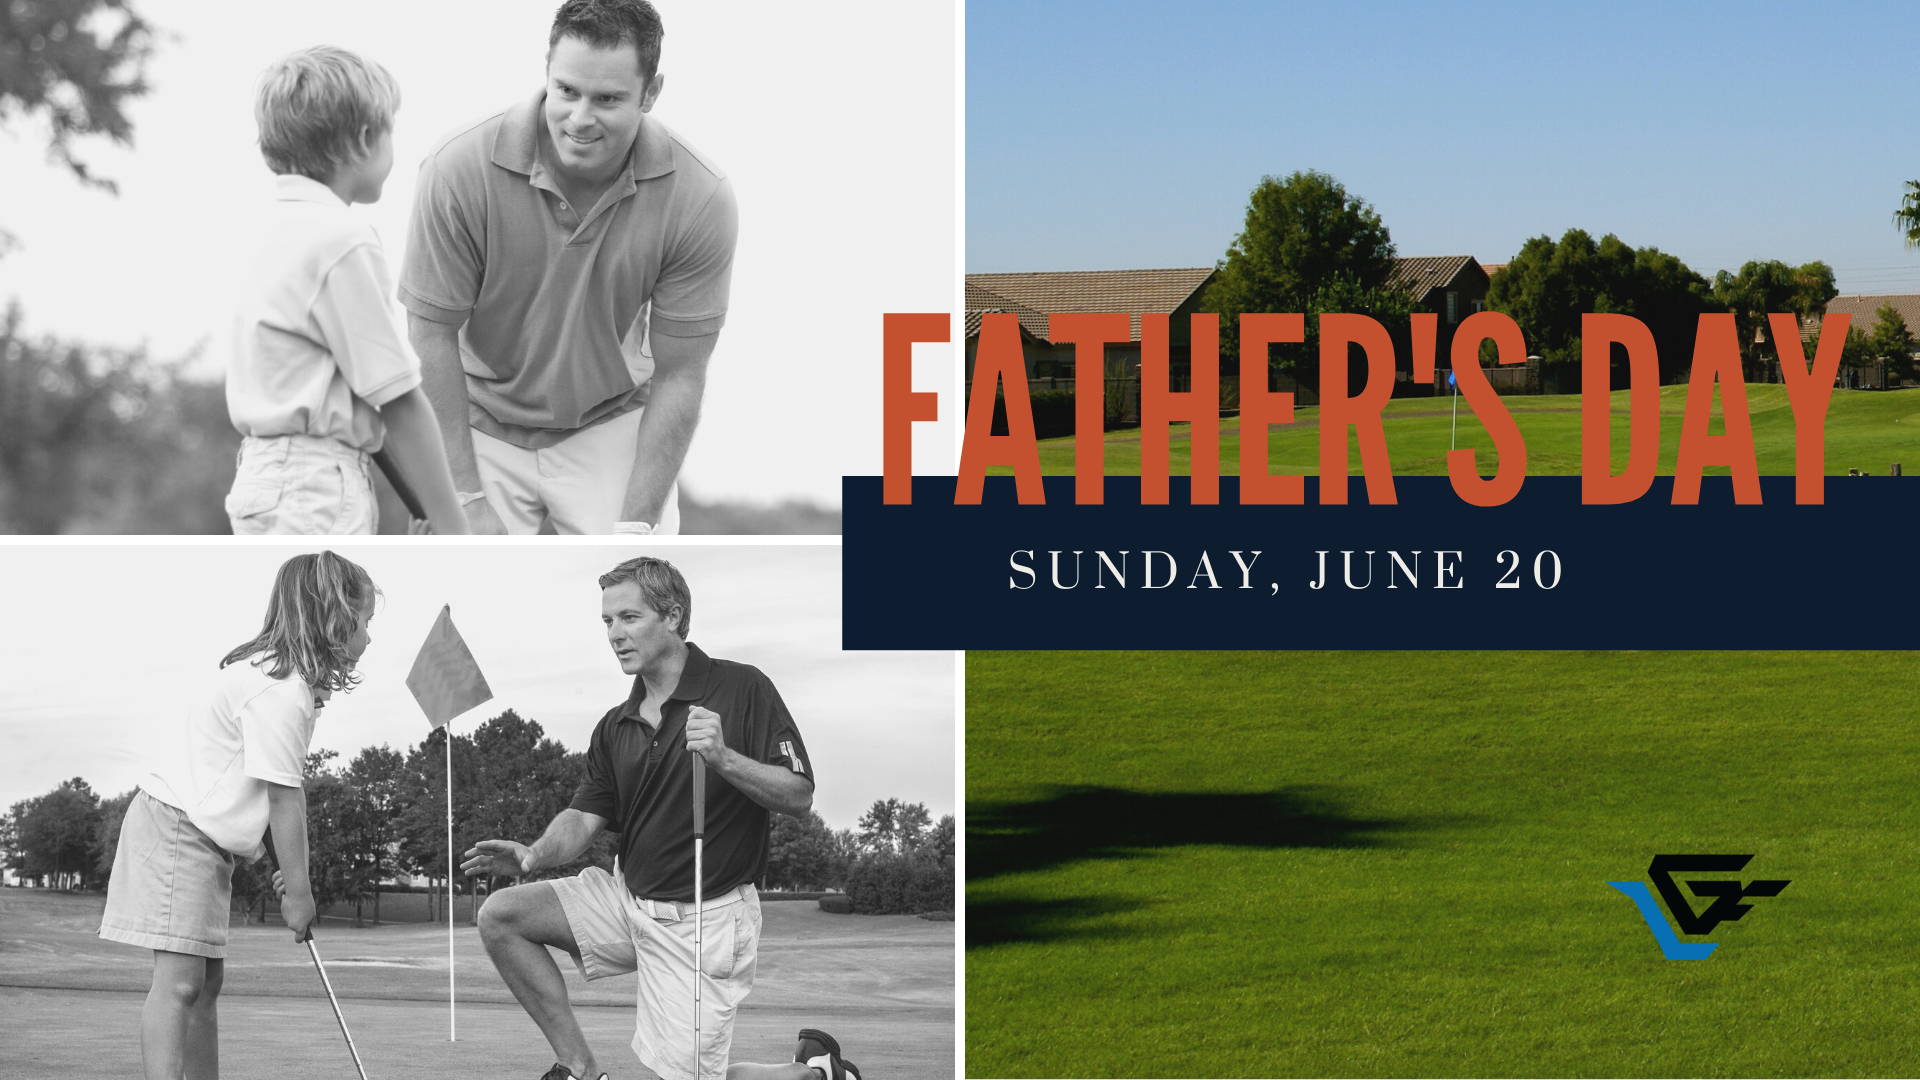 Father's Day at Greenfield Lakes